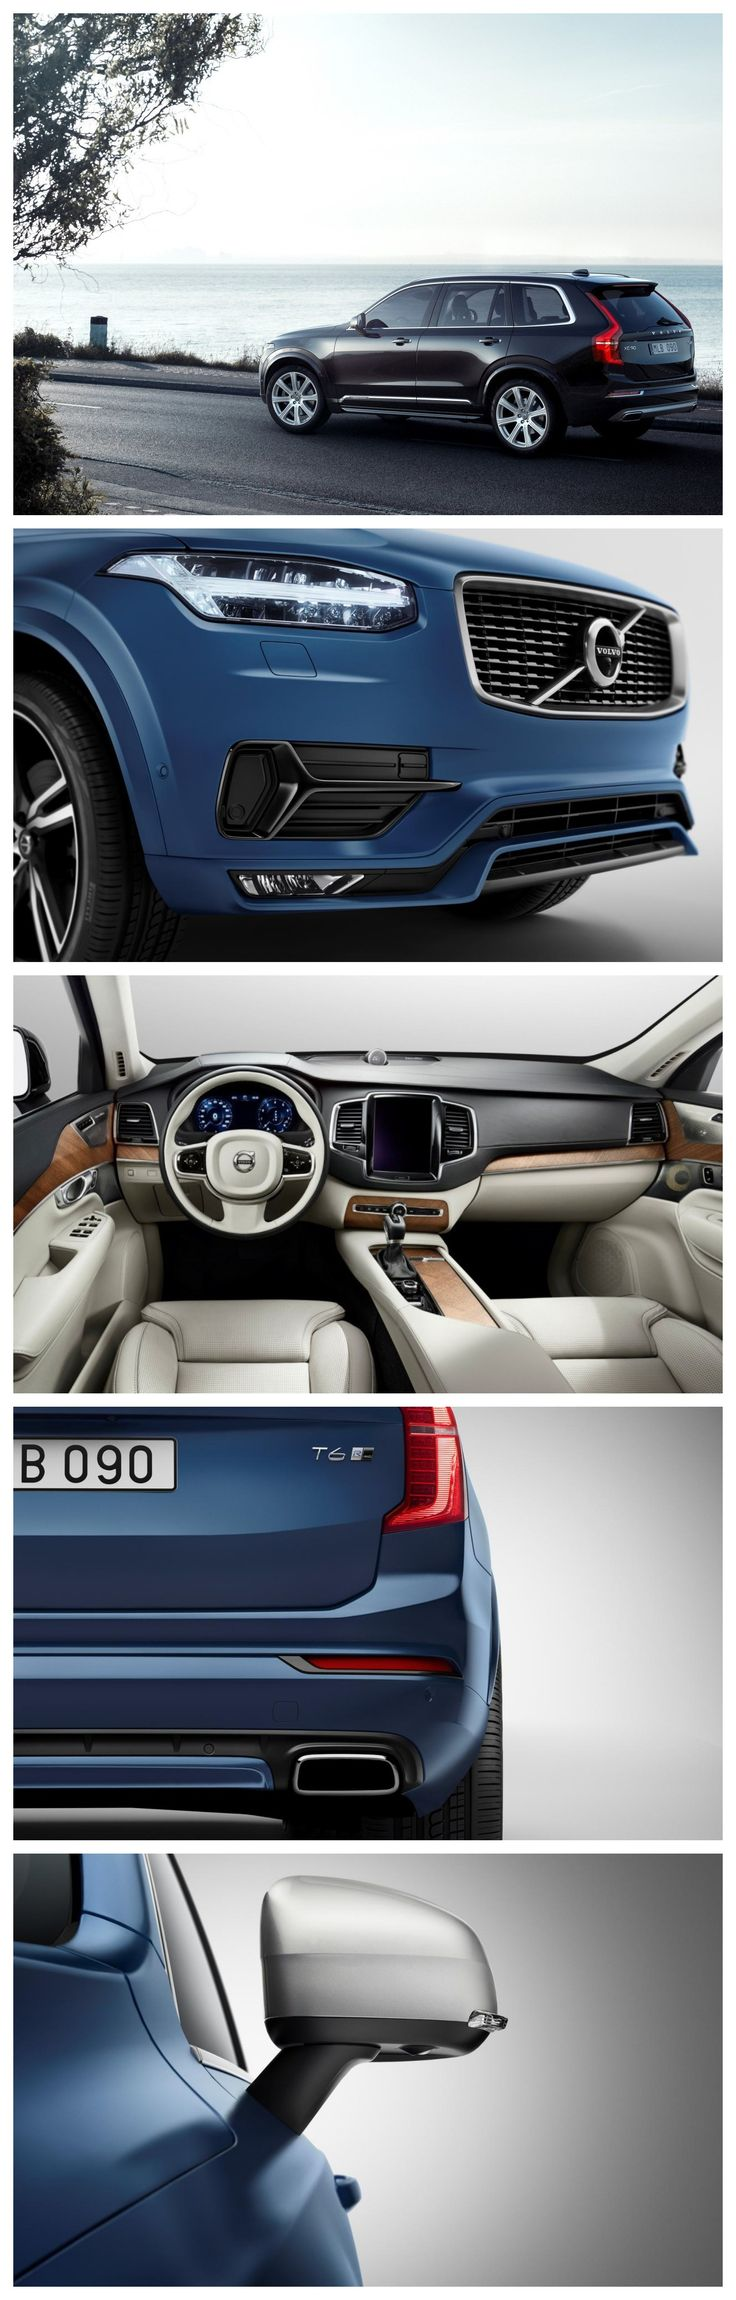 The may 12 has been finalized for the launch of this volvo next generation with only diesel engine though